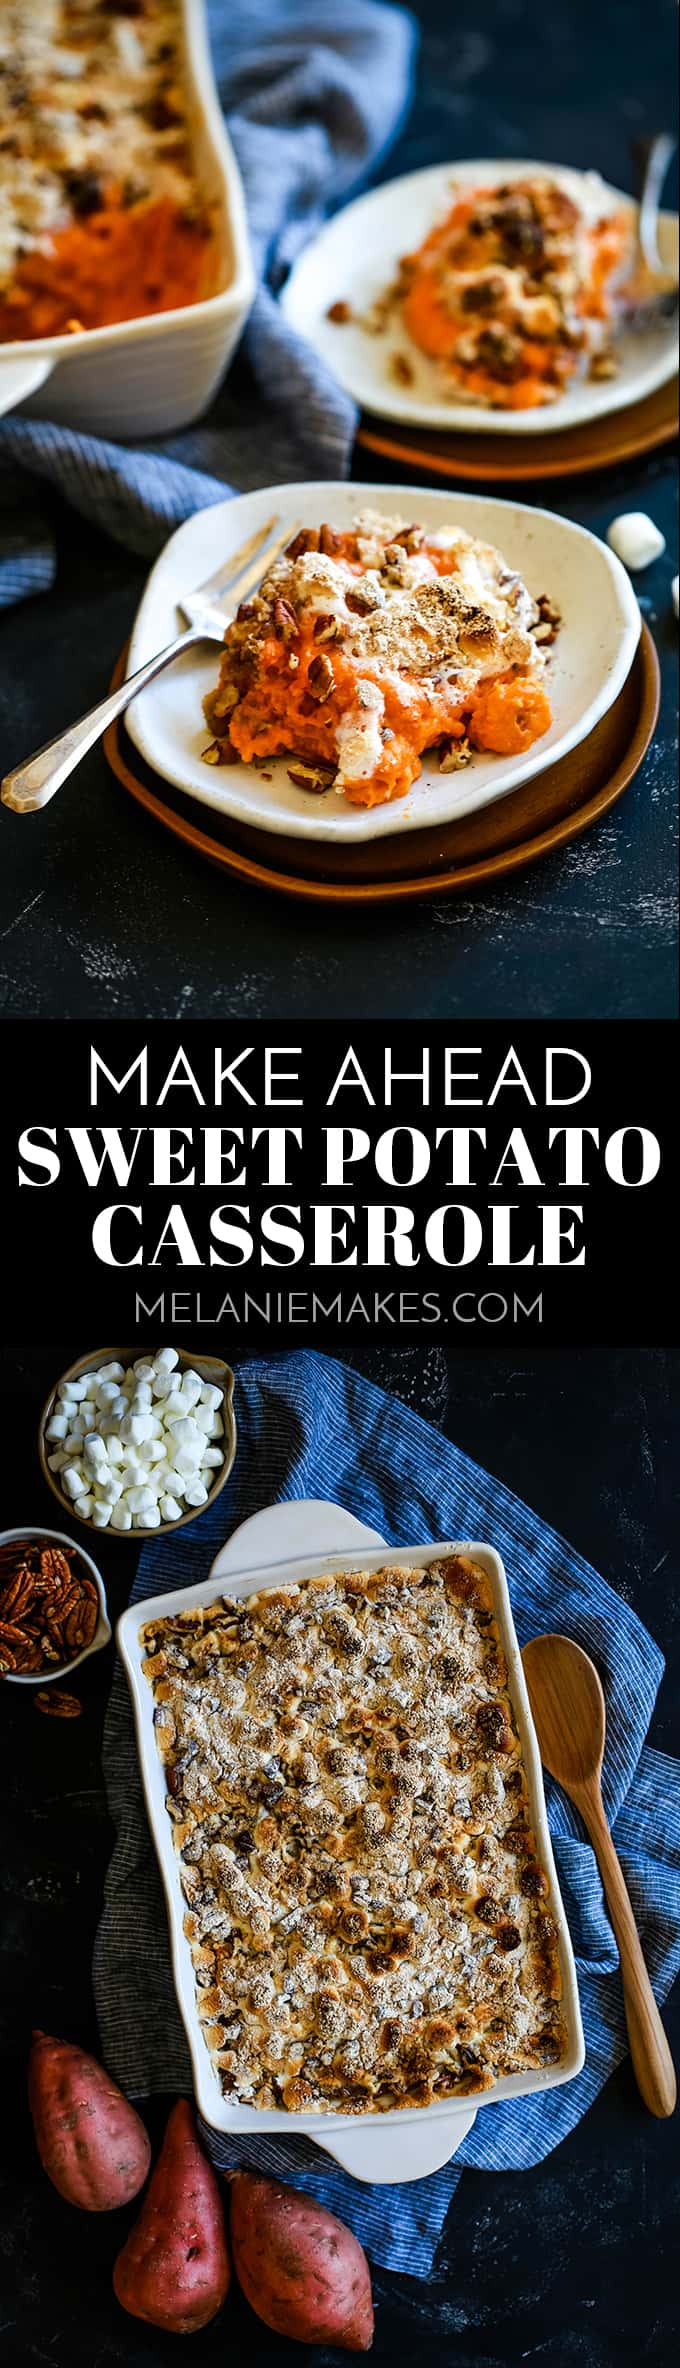 This Make Ahead Sweet Potato Casserole is perfect as it allows you to - as the name implies! - make it ahead of time and serve when you're ready. #sweetpotatoes #sweetpotatocasserole #thanksgiving #christmas #marshmallow #pecans